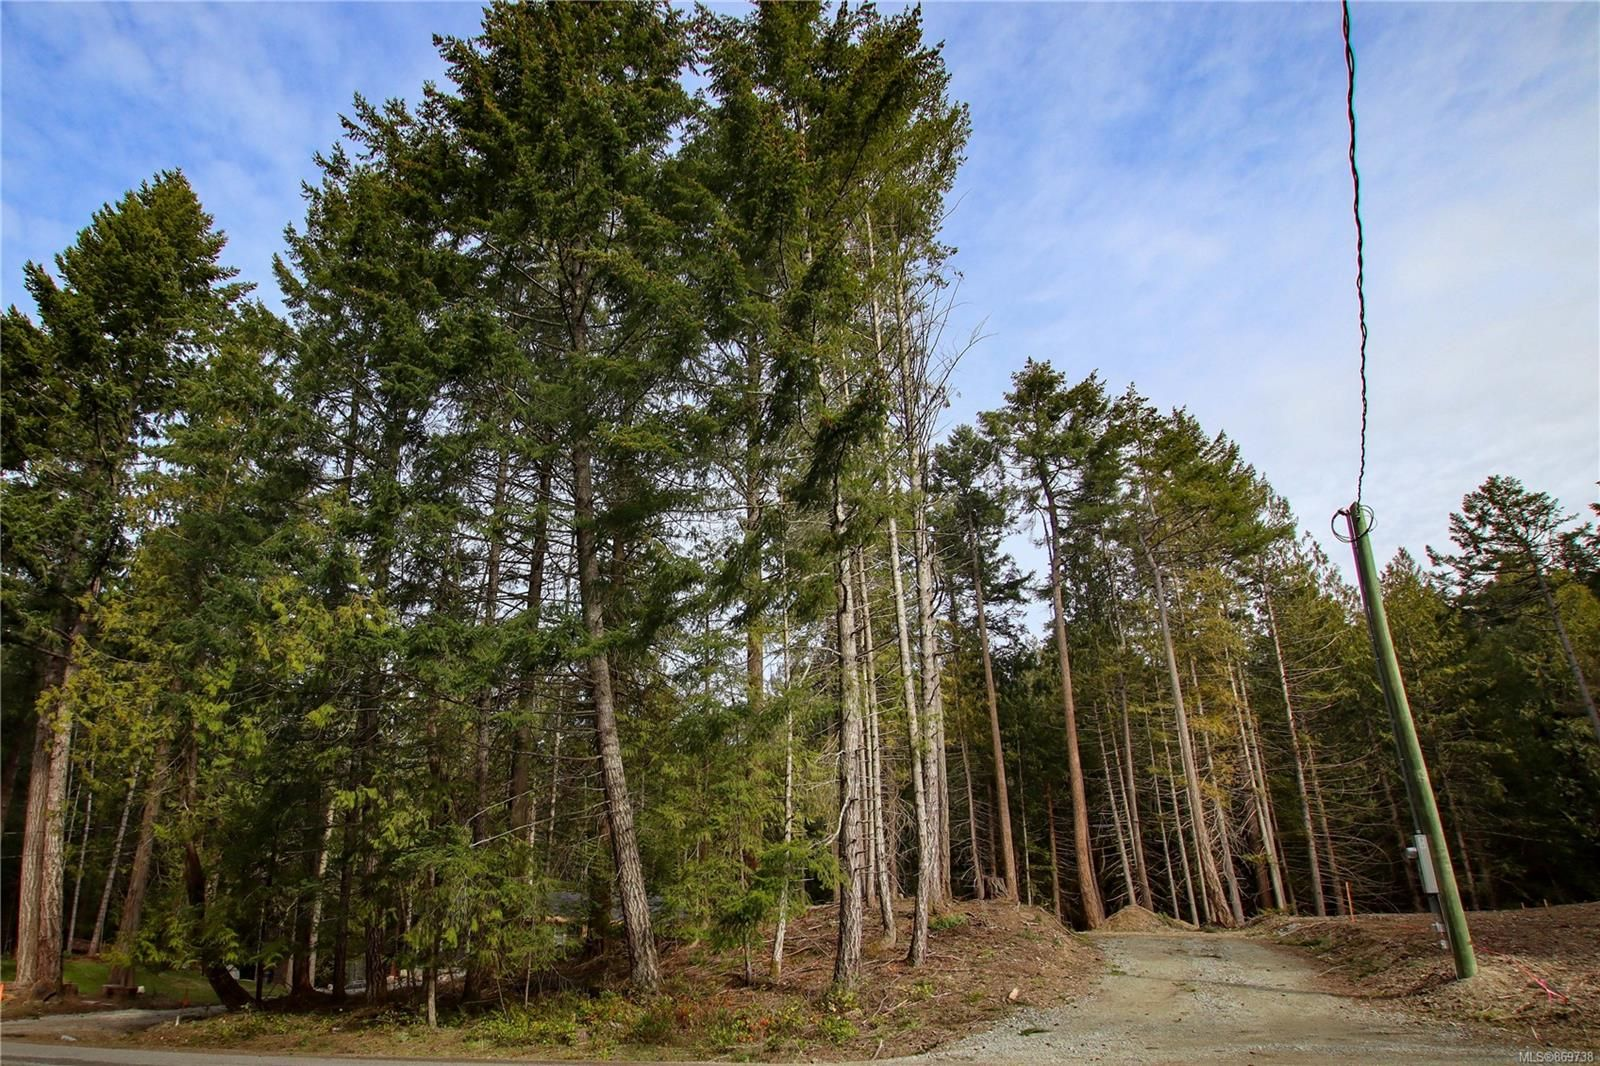 Main Photo: 3614 Jolly Roger Cres in : GI Pender Island Land for sale (Gulf Islands)  : MLS®# 869738